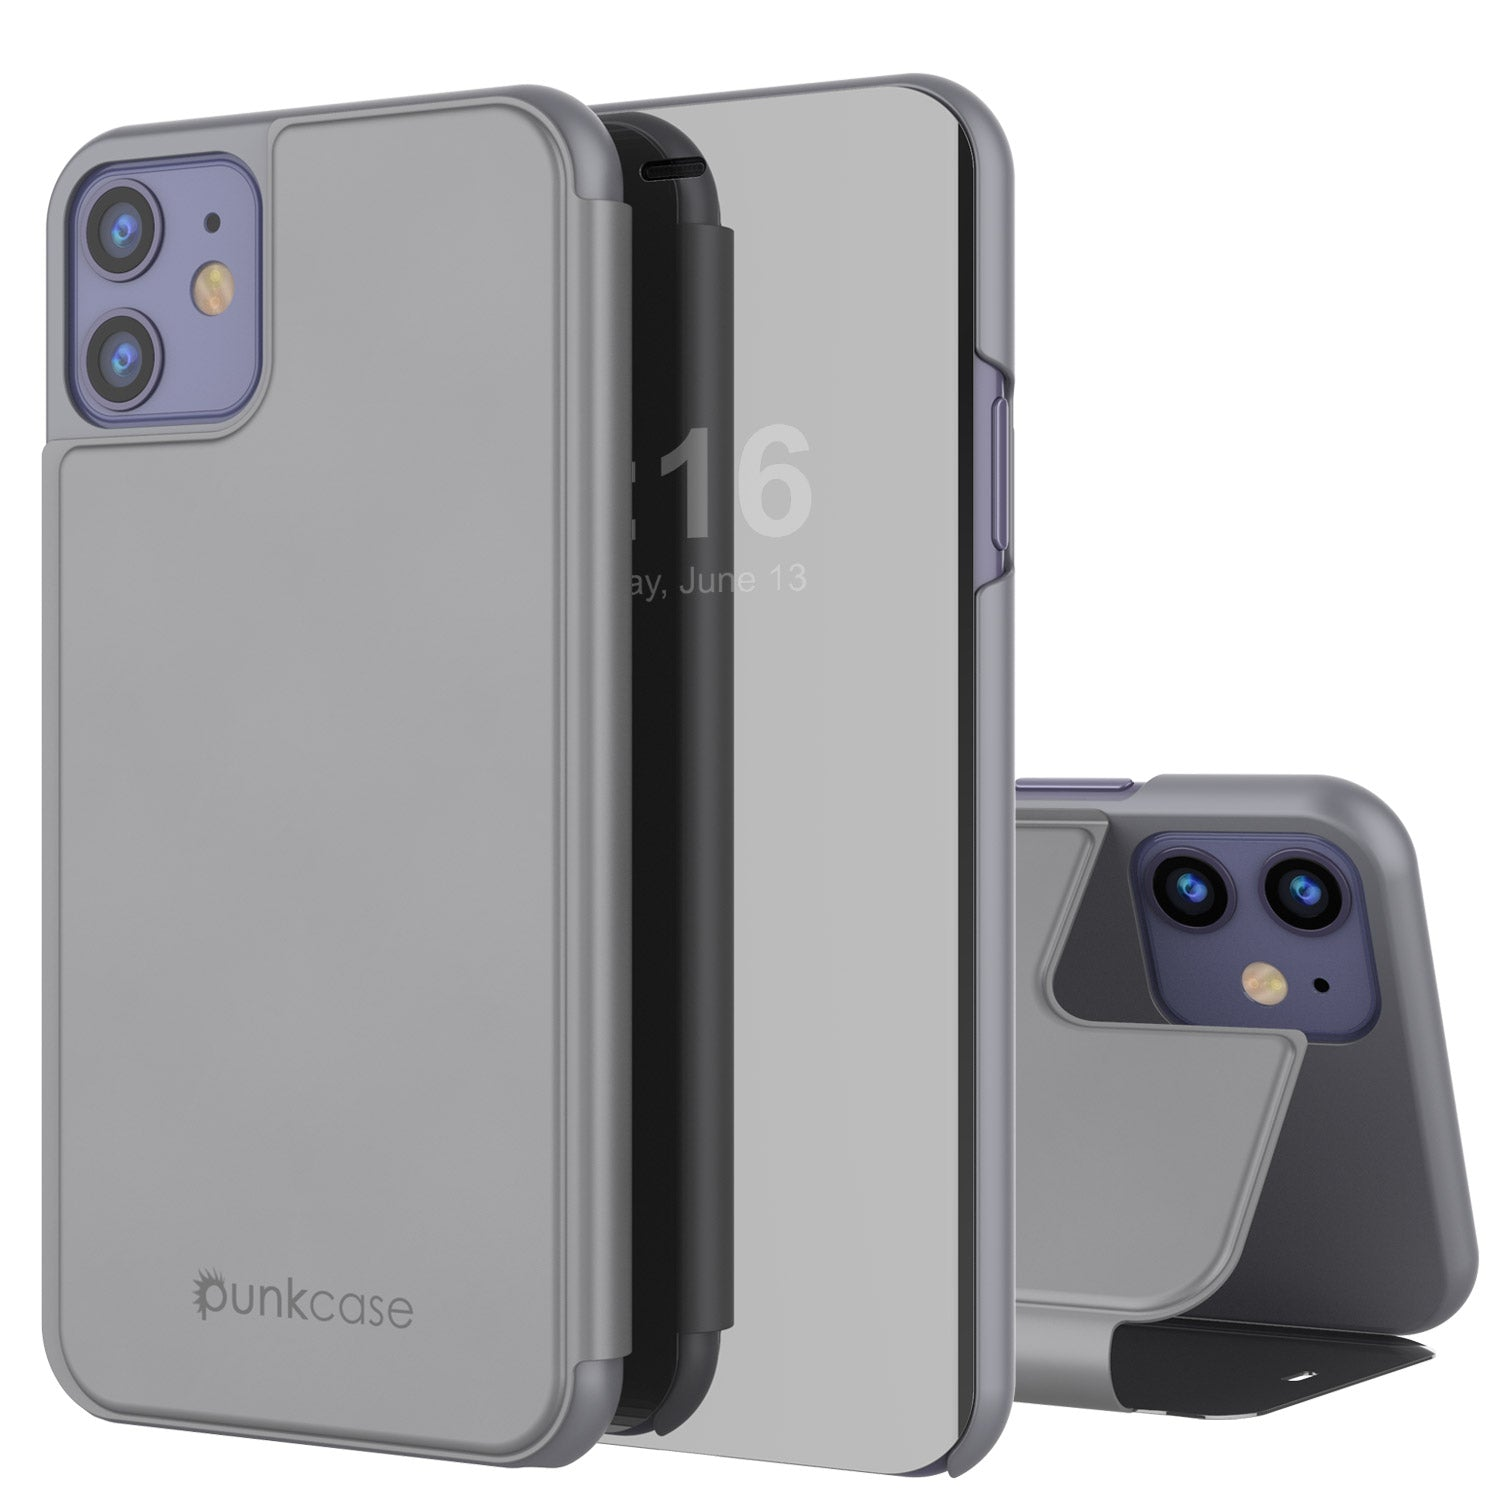 Punkcase iPhone 11 / XI Reflector Case Protective Flip Cover [Silver]